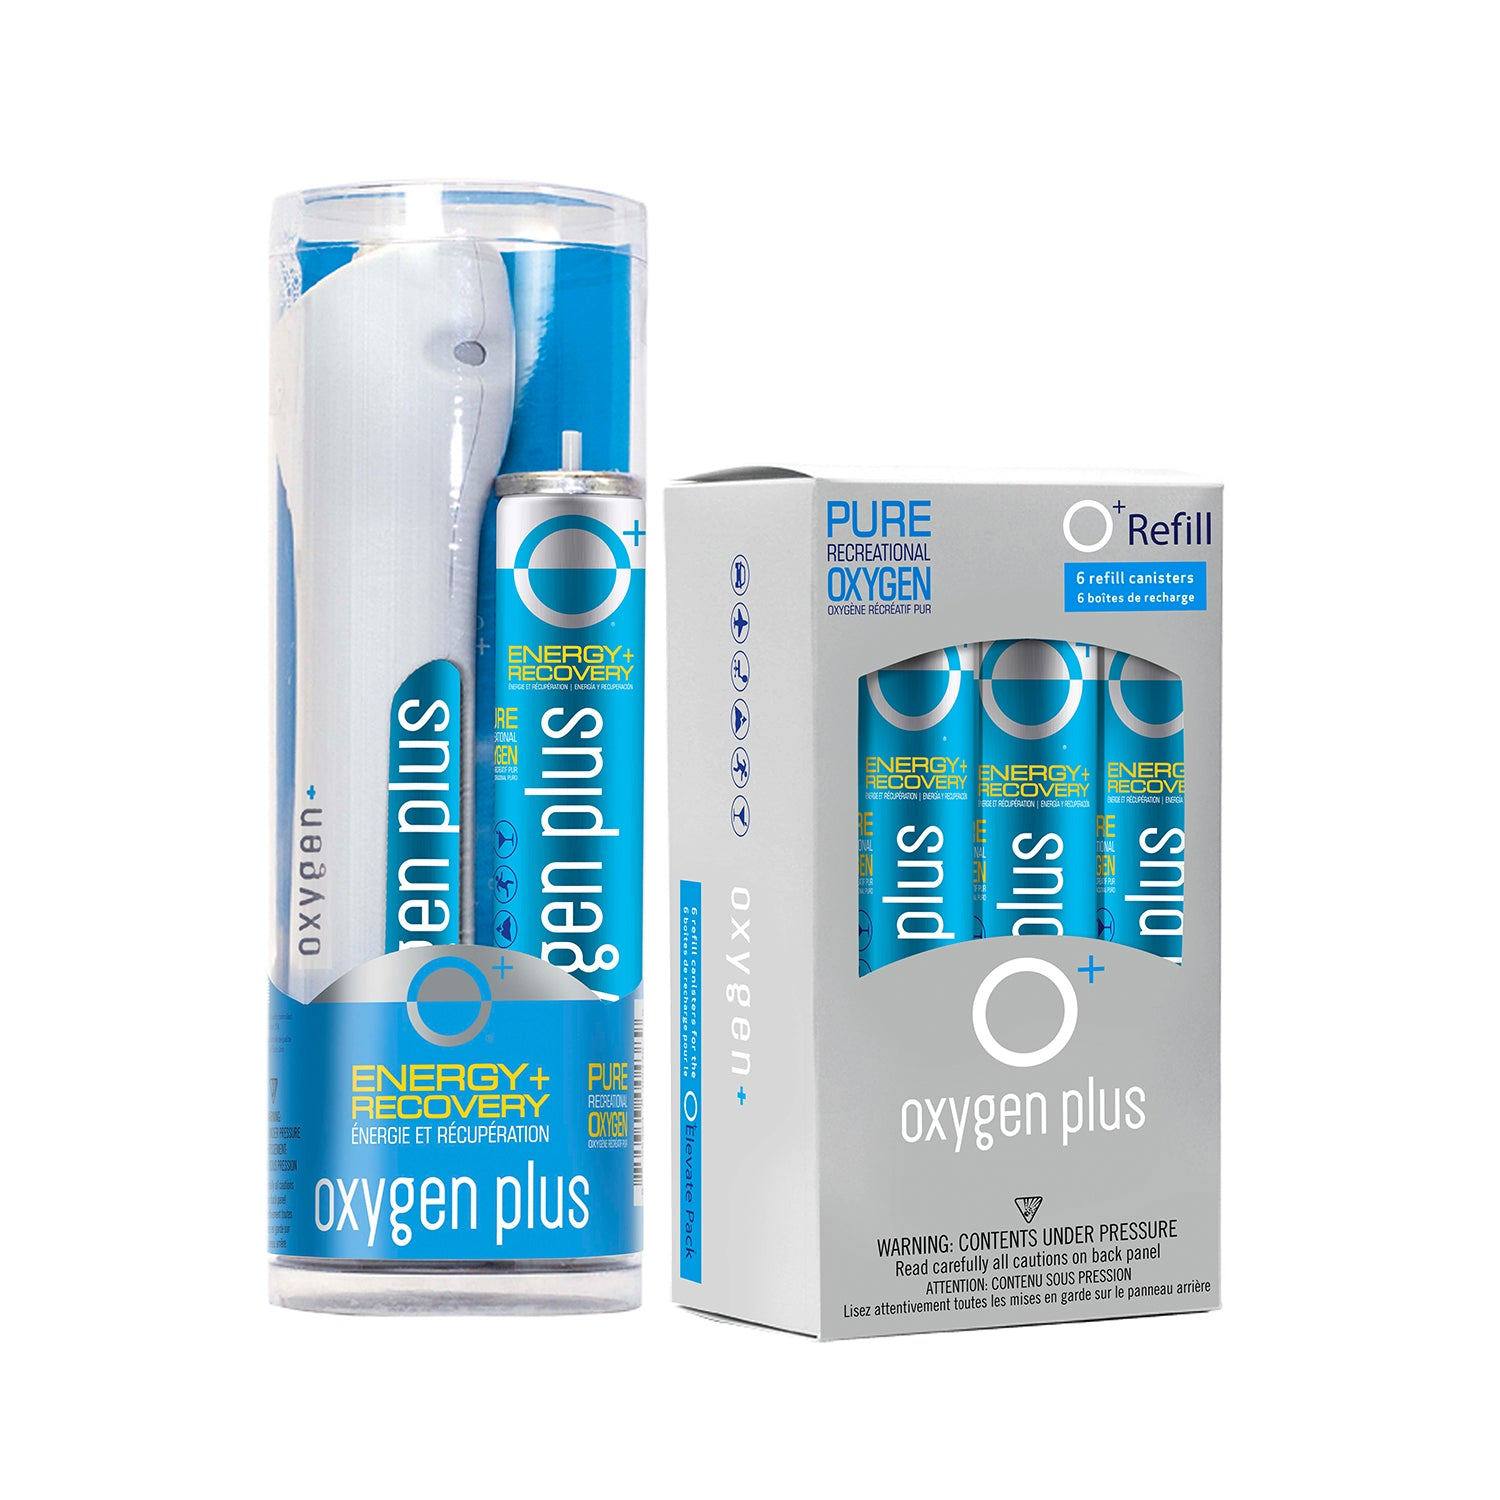 O+ Elevate Refill Starter-Pack: O+ Elevate Pack & 6 O+ Refills